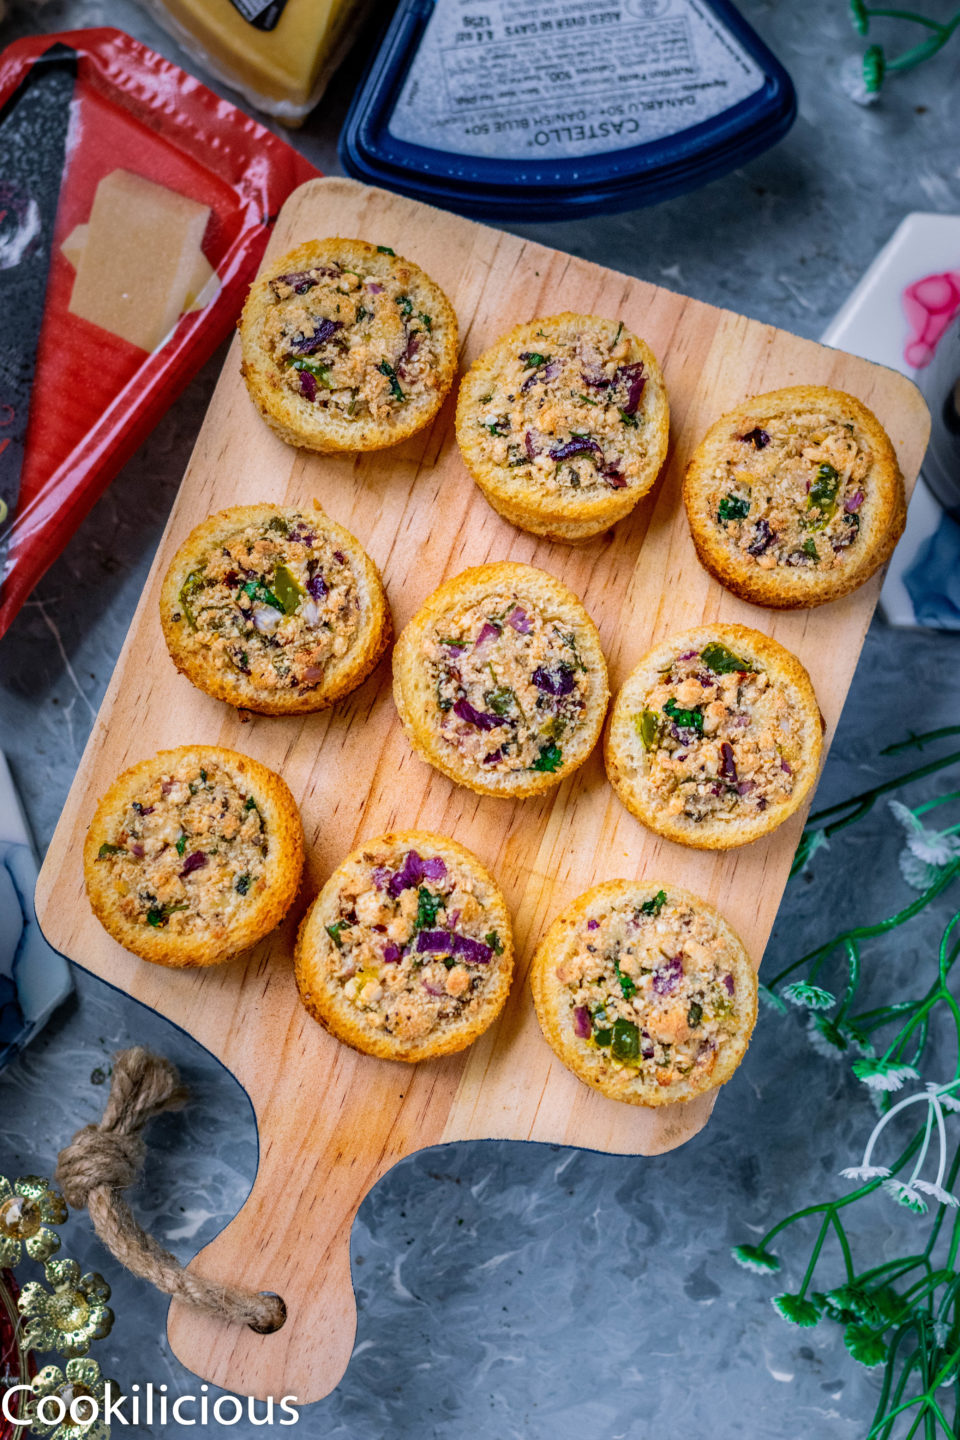 Baked Cheese Stuffed Bread Rings neatly arranged in a wooden tray